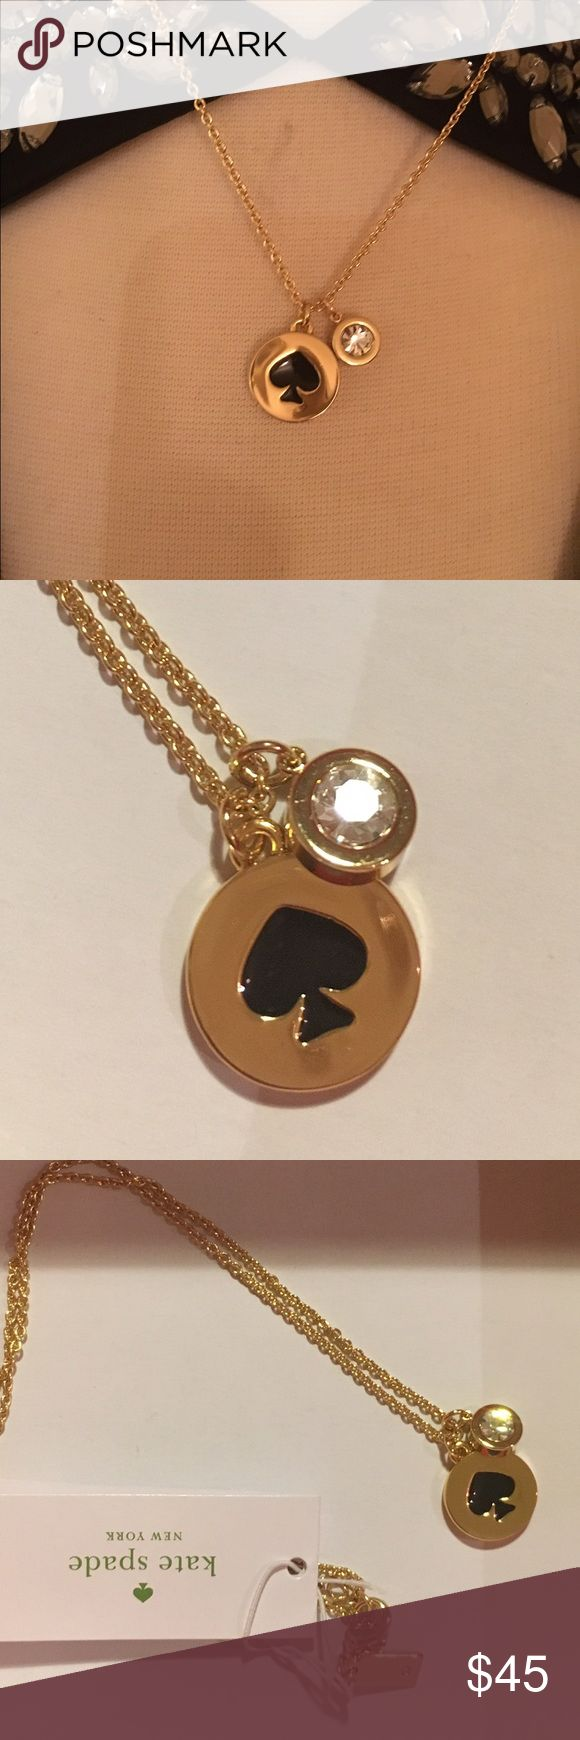 NEWKate Spade Charm Pendant Necklace NEWKate Spade Charm Pendant Necklace. Perfect Holiday Gift! Comes with giftbox ❌no trading or holding kate spade Jewelry Necklaces